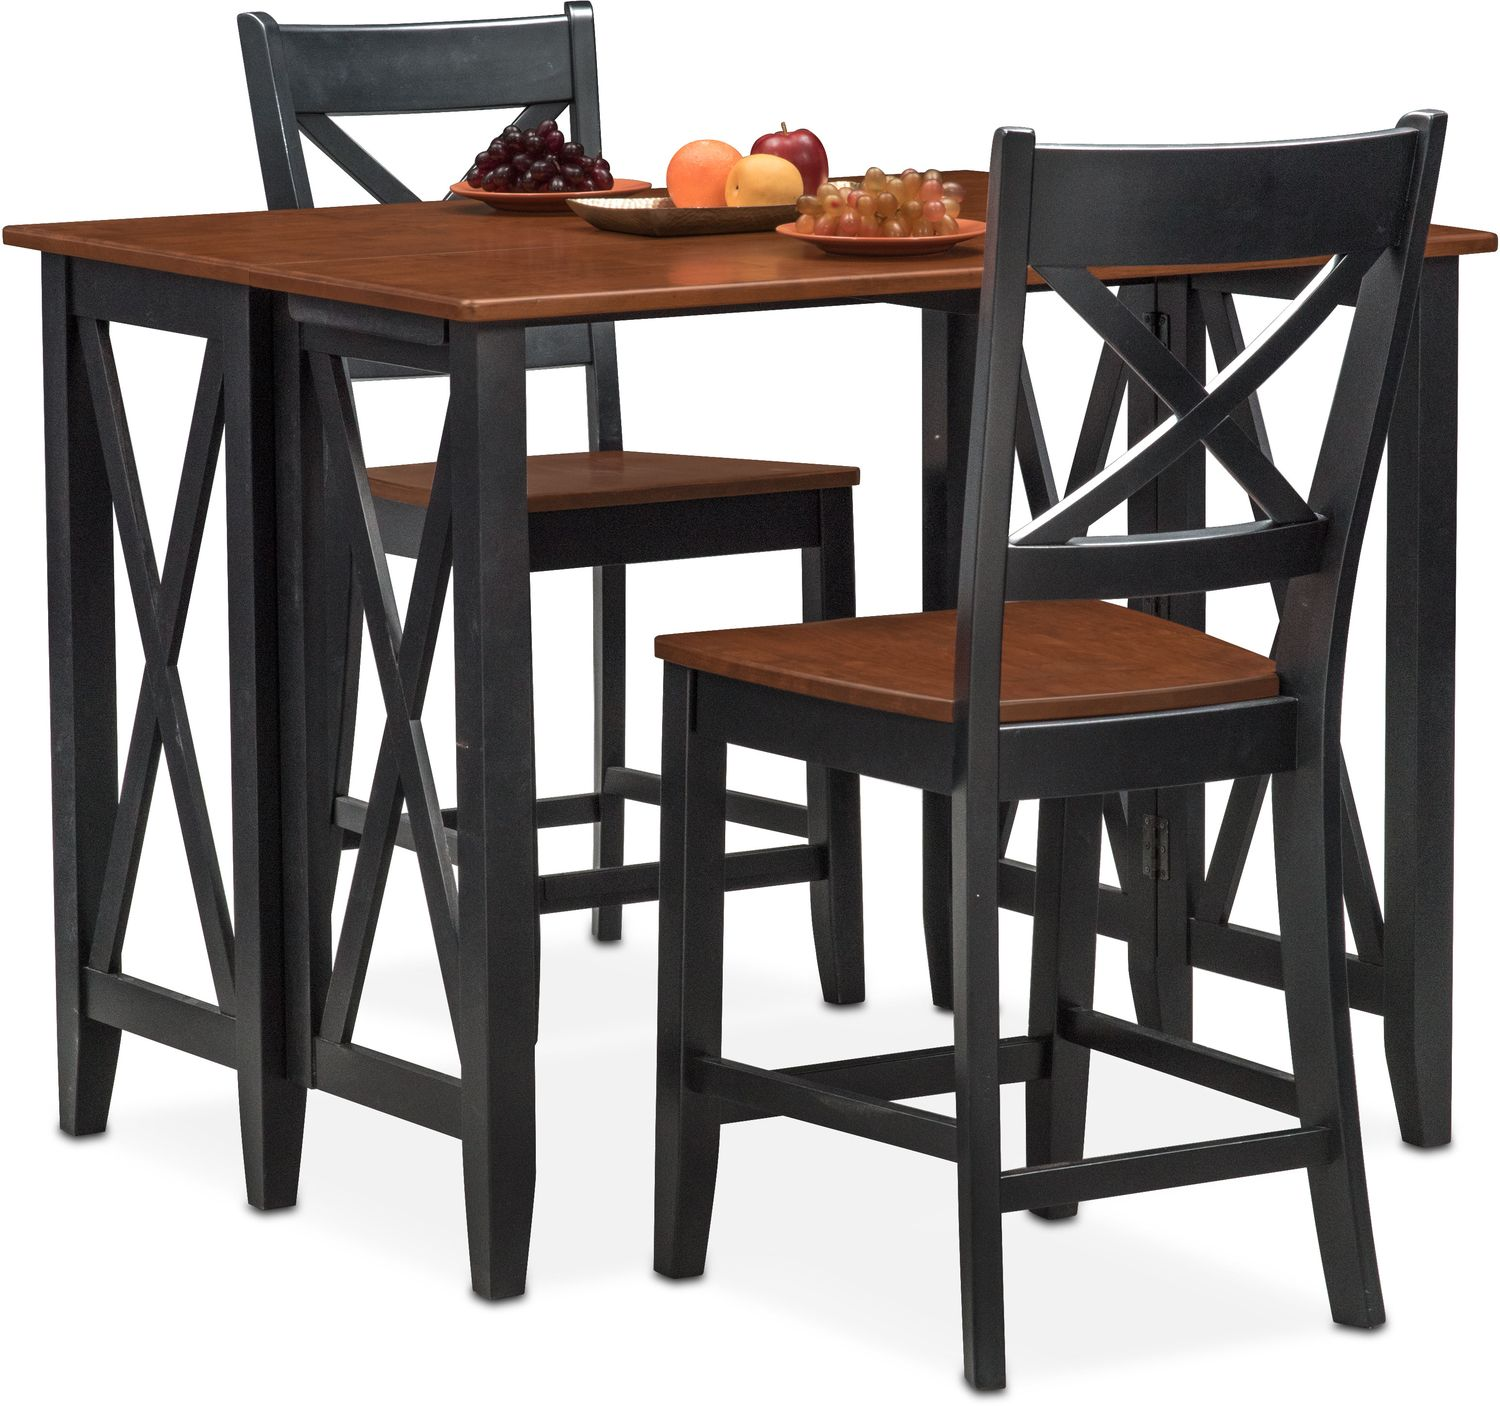 Bar Height Dining Chairs Nantucket Breakfast Bar And 2 Counter Height Side Chairs